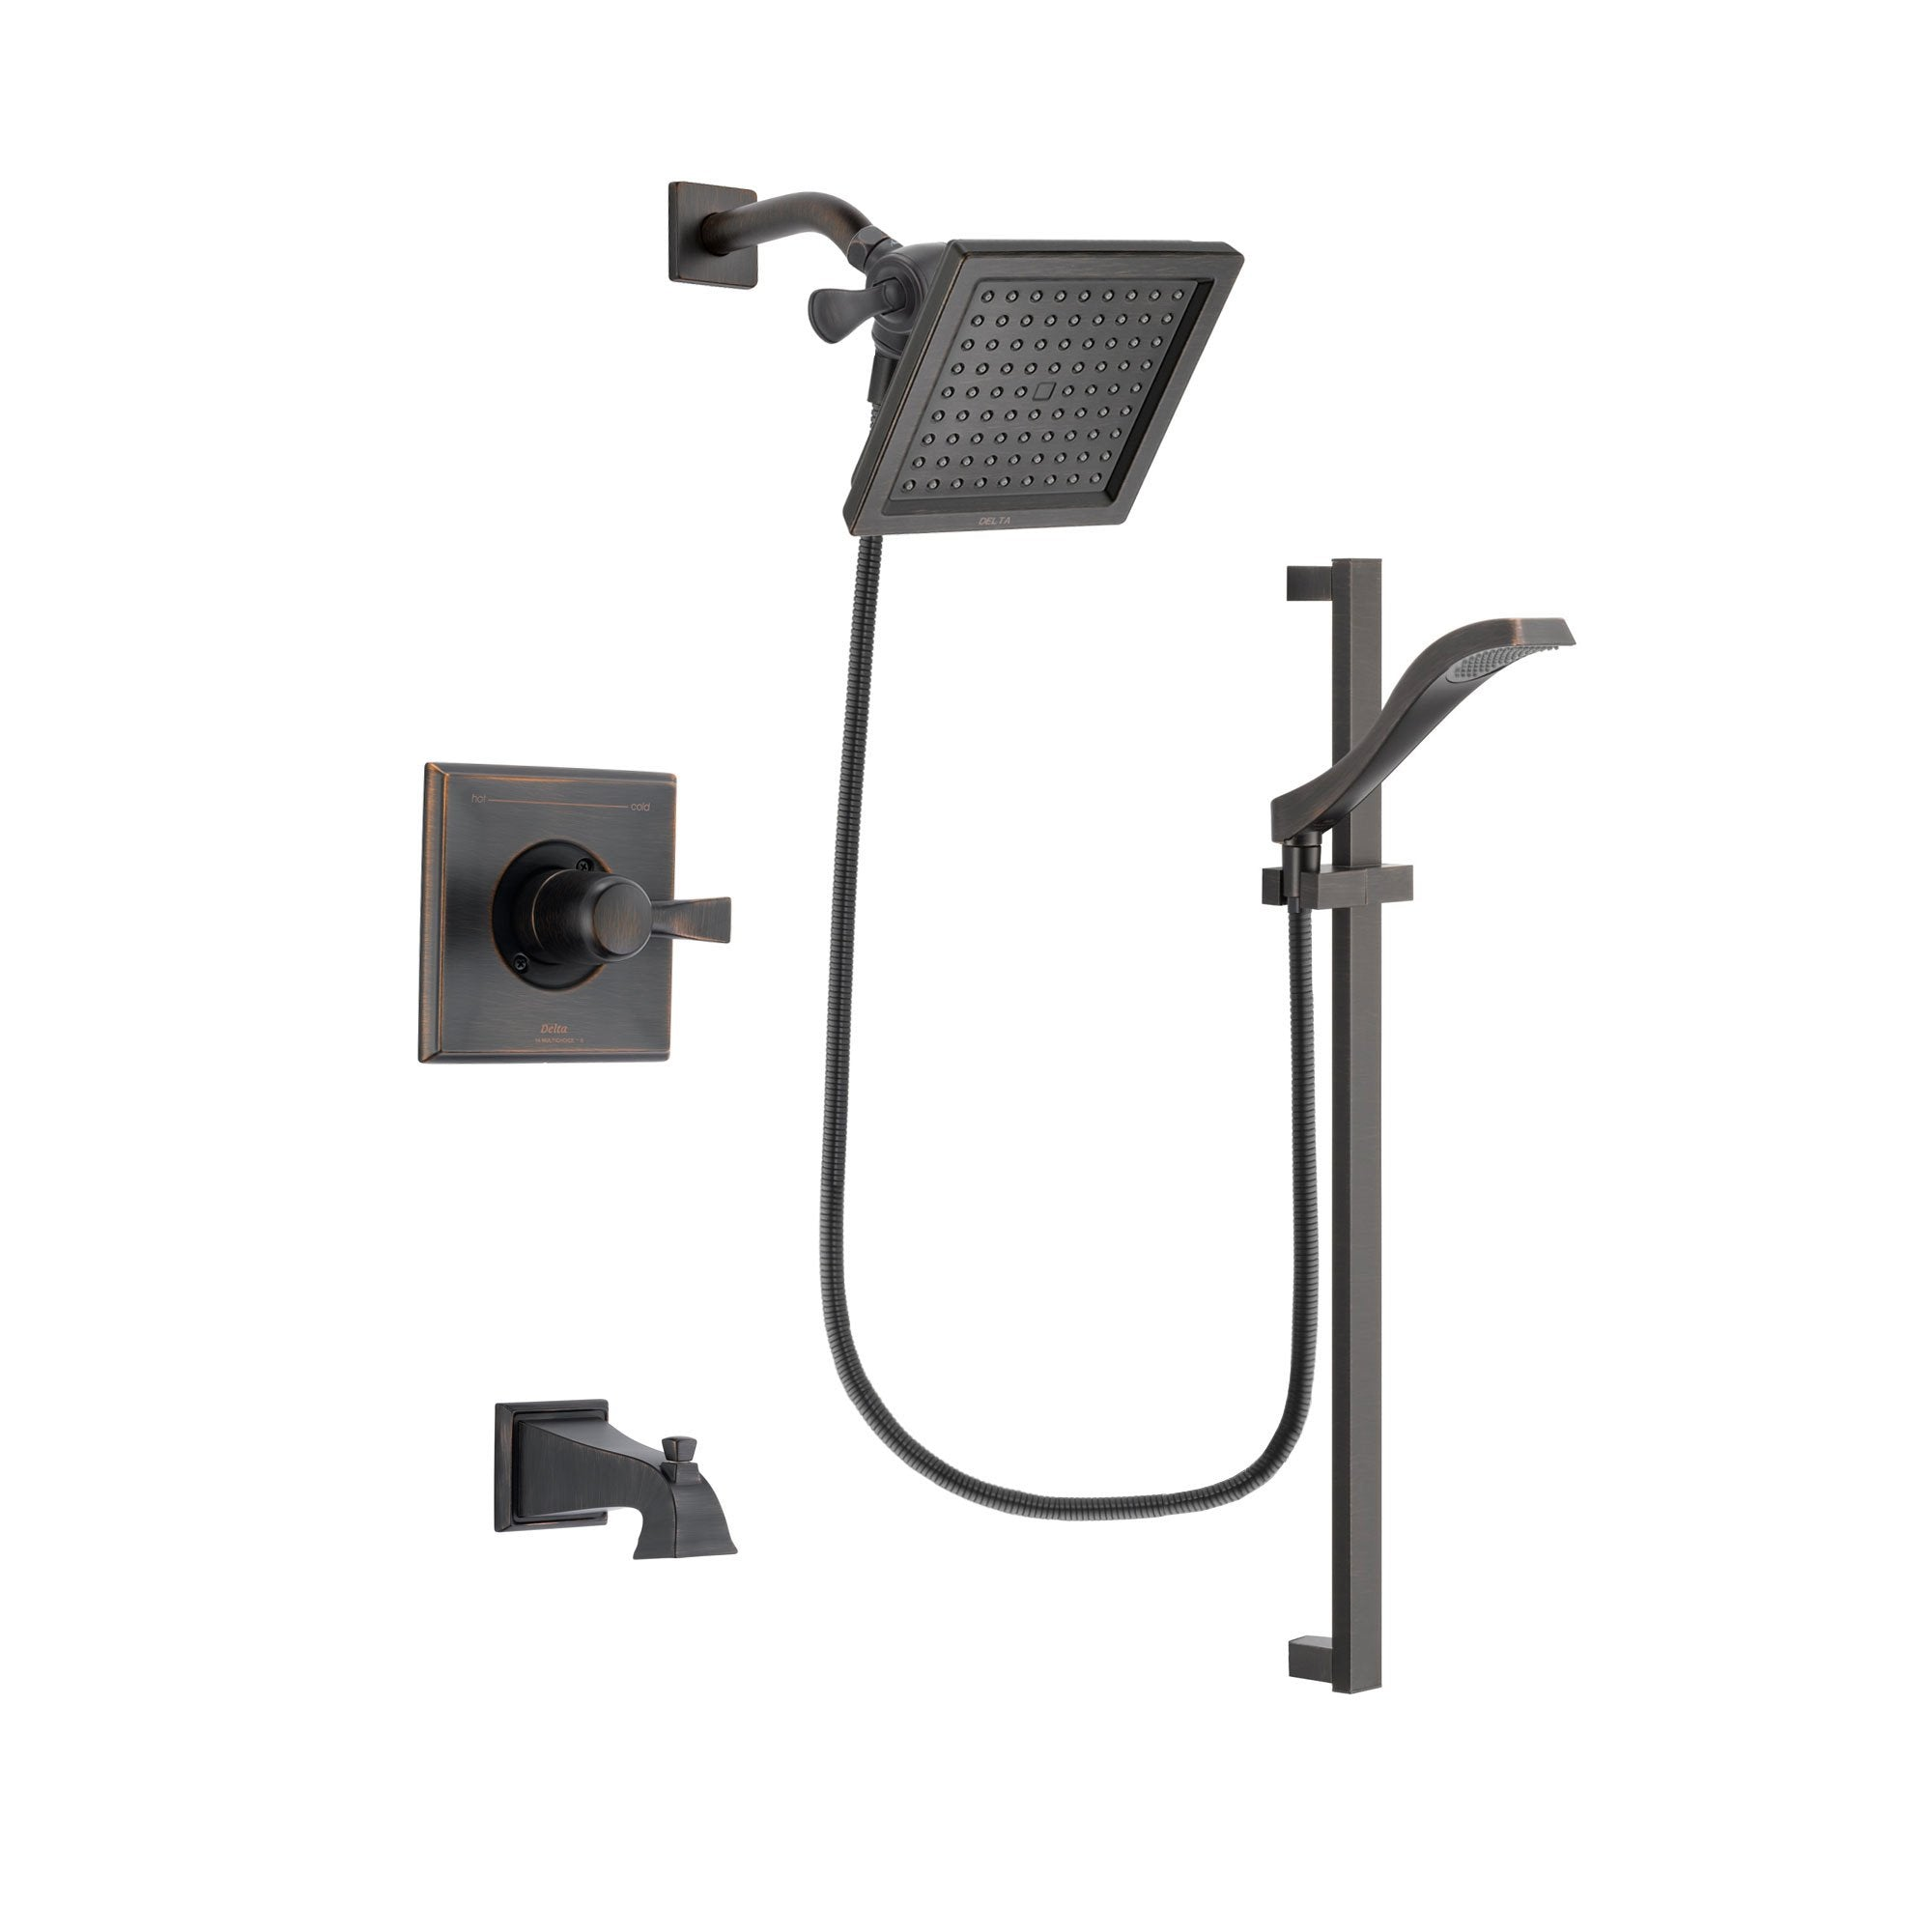 Delta Dryden Venetian Bronze Tub and Shower Faucet System w/Hand Shower DSP3117V